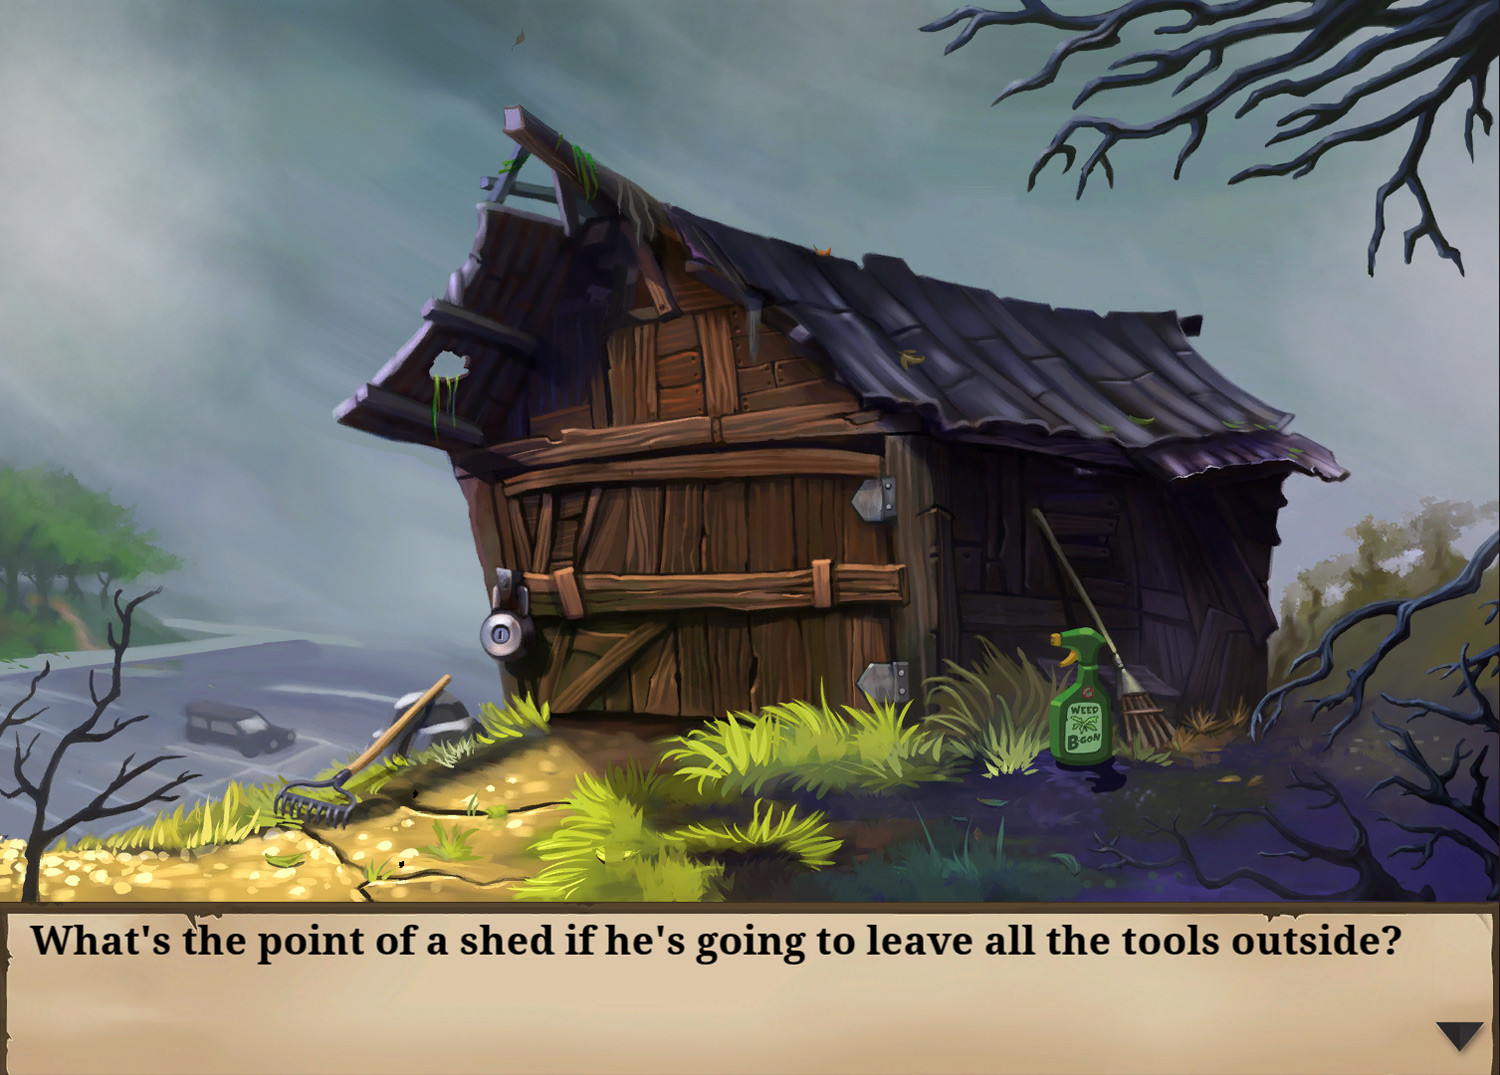 'Goosebumps': 2D Graphic Adventure